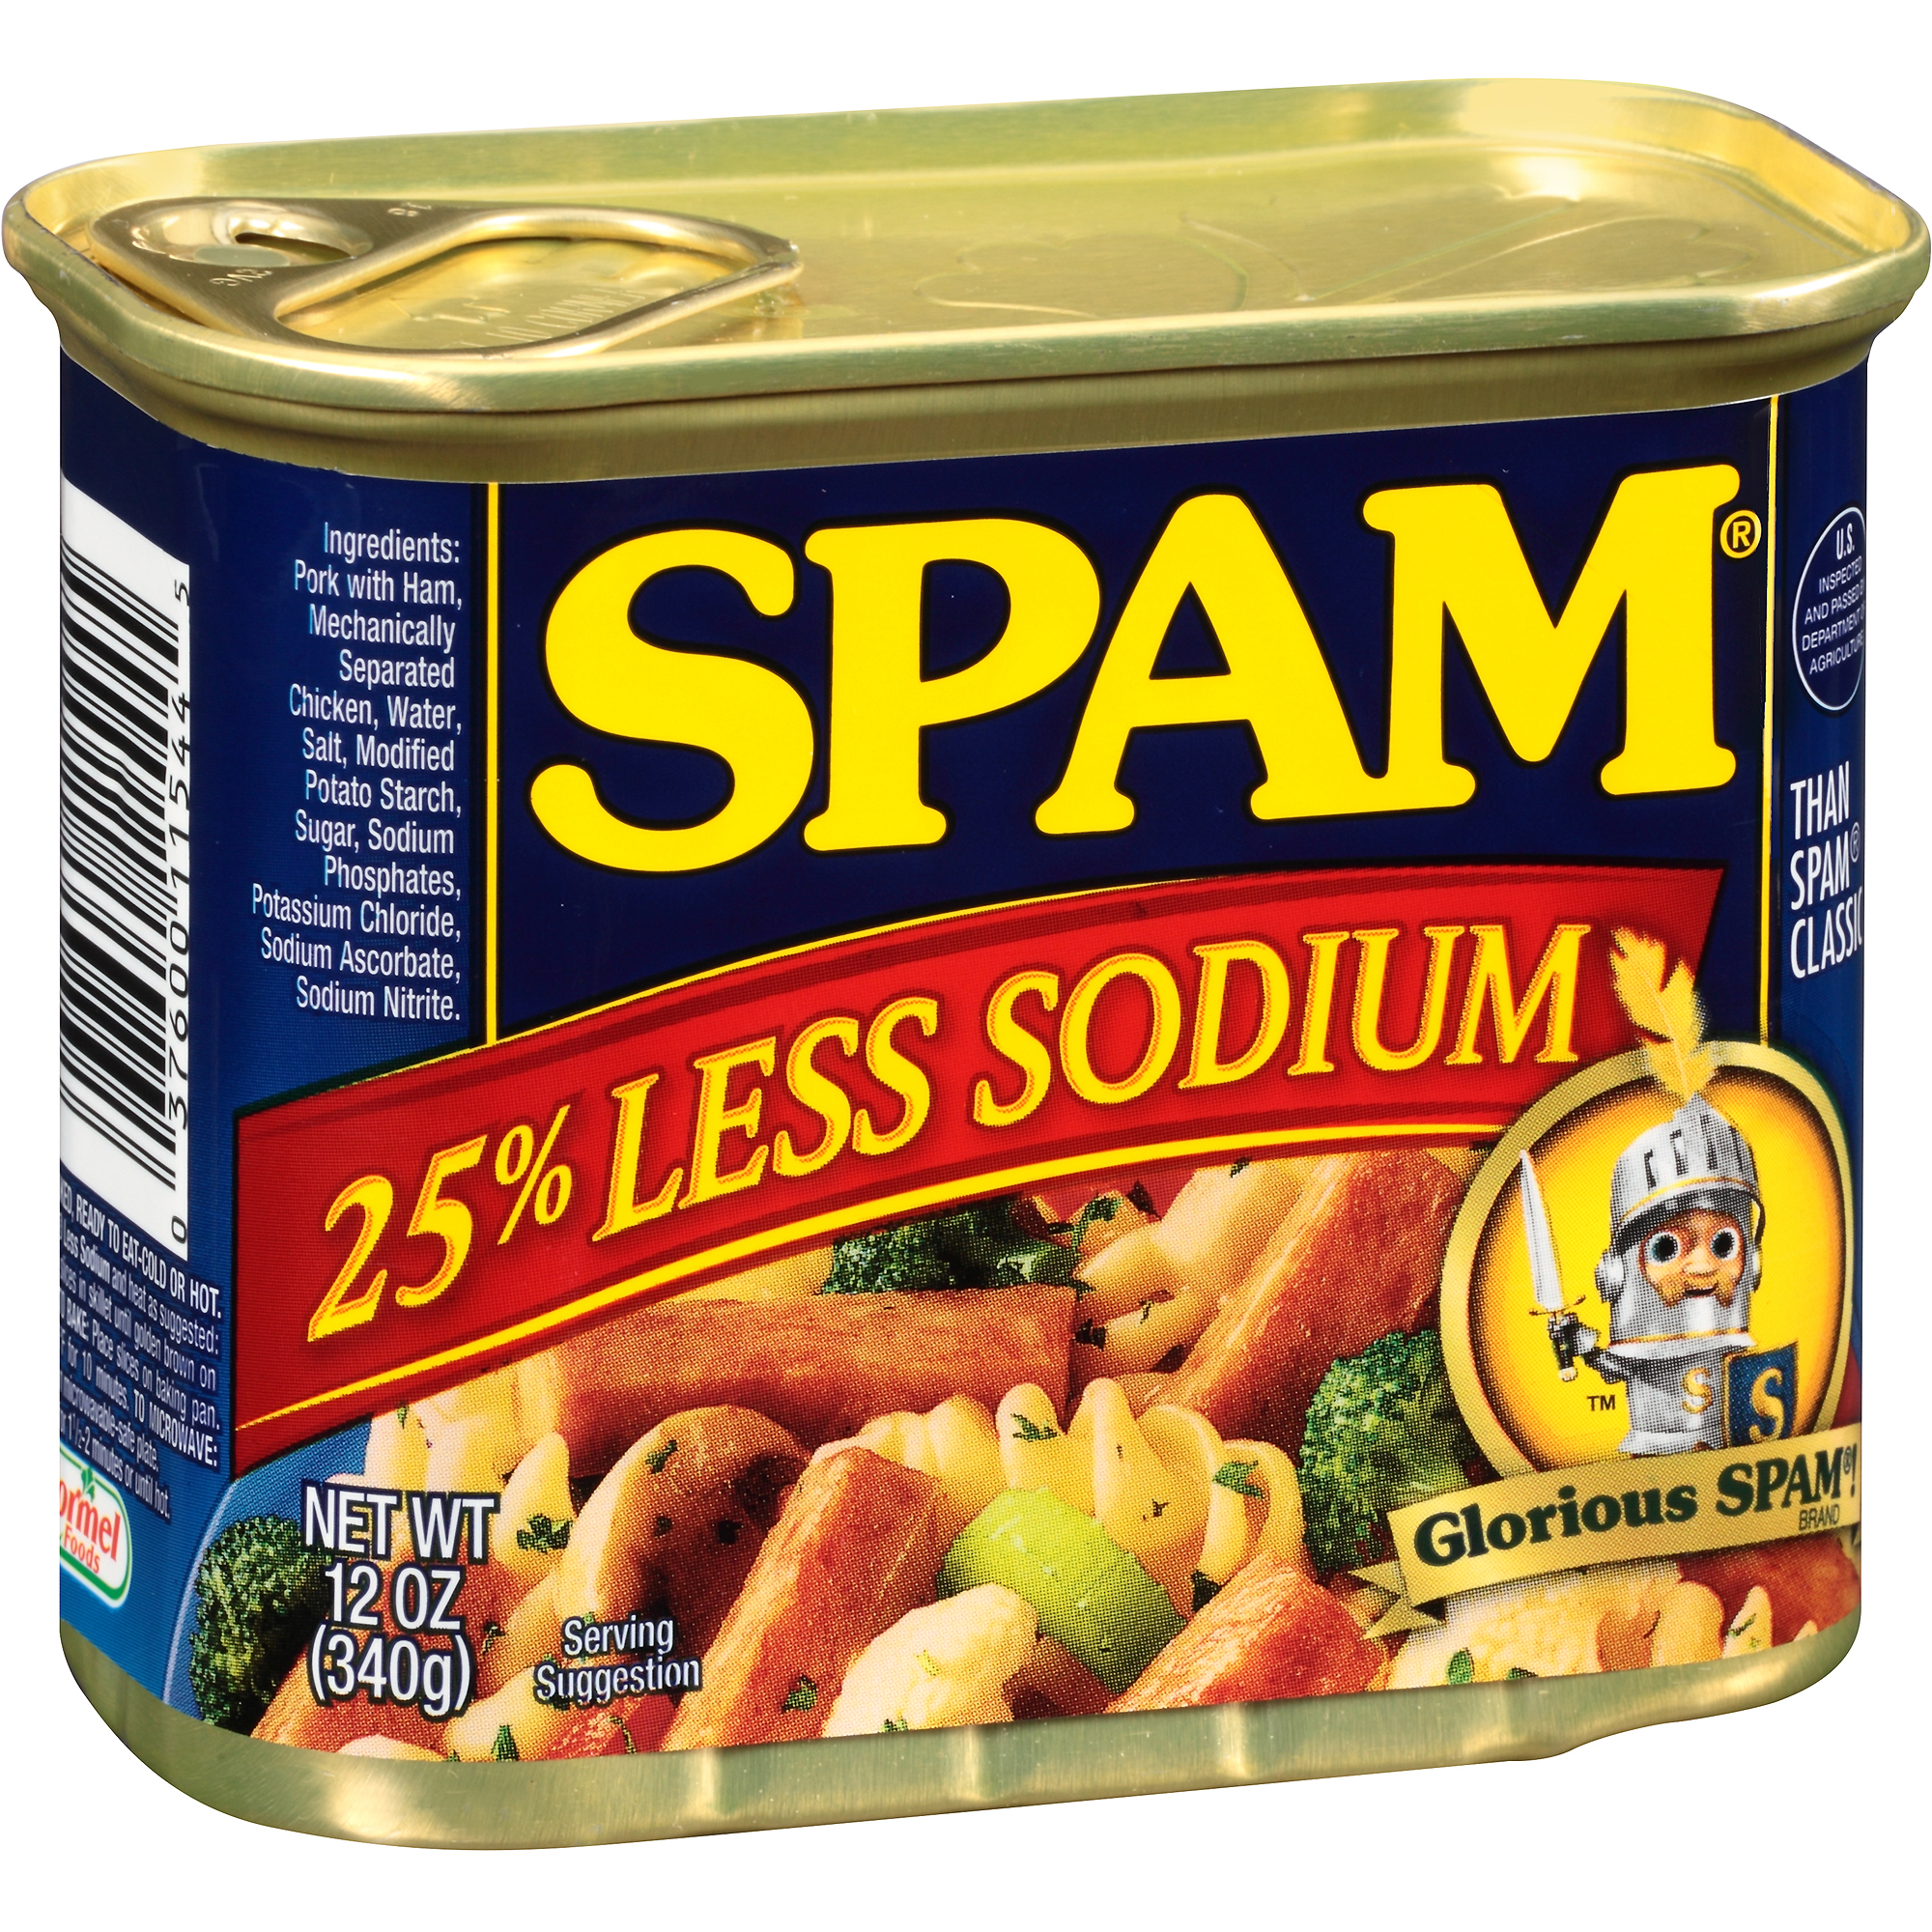 Spam 25% Less Sodium Canned Meat, 12 oz